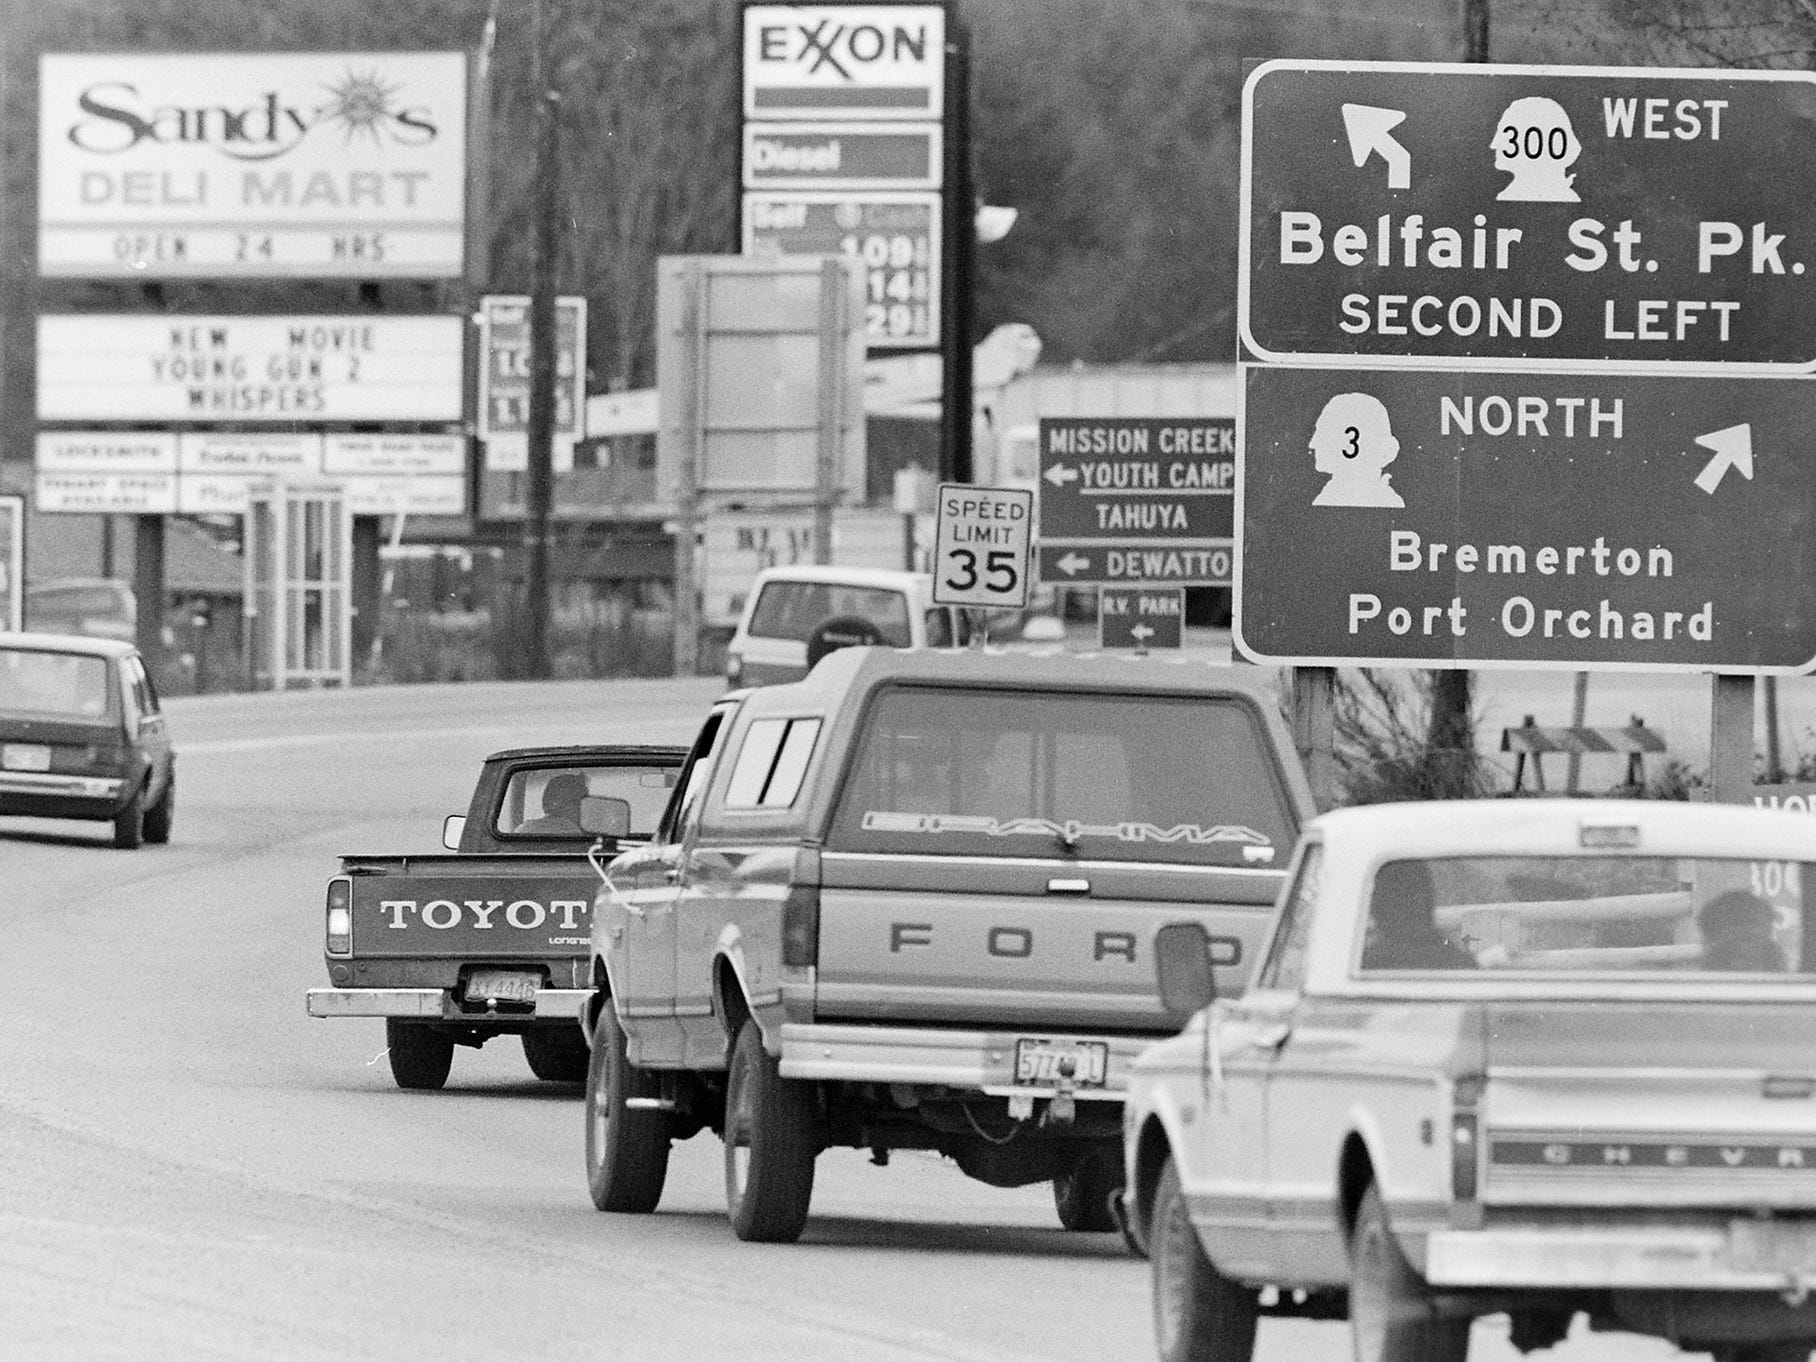 03/07/91